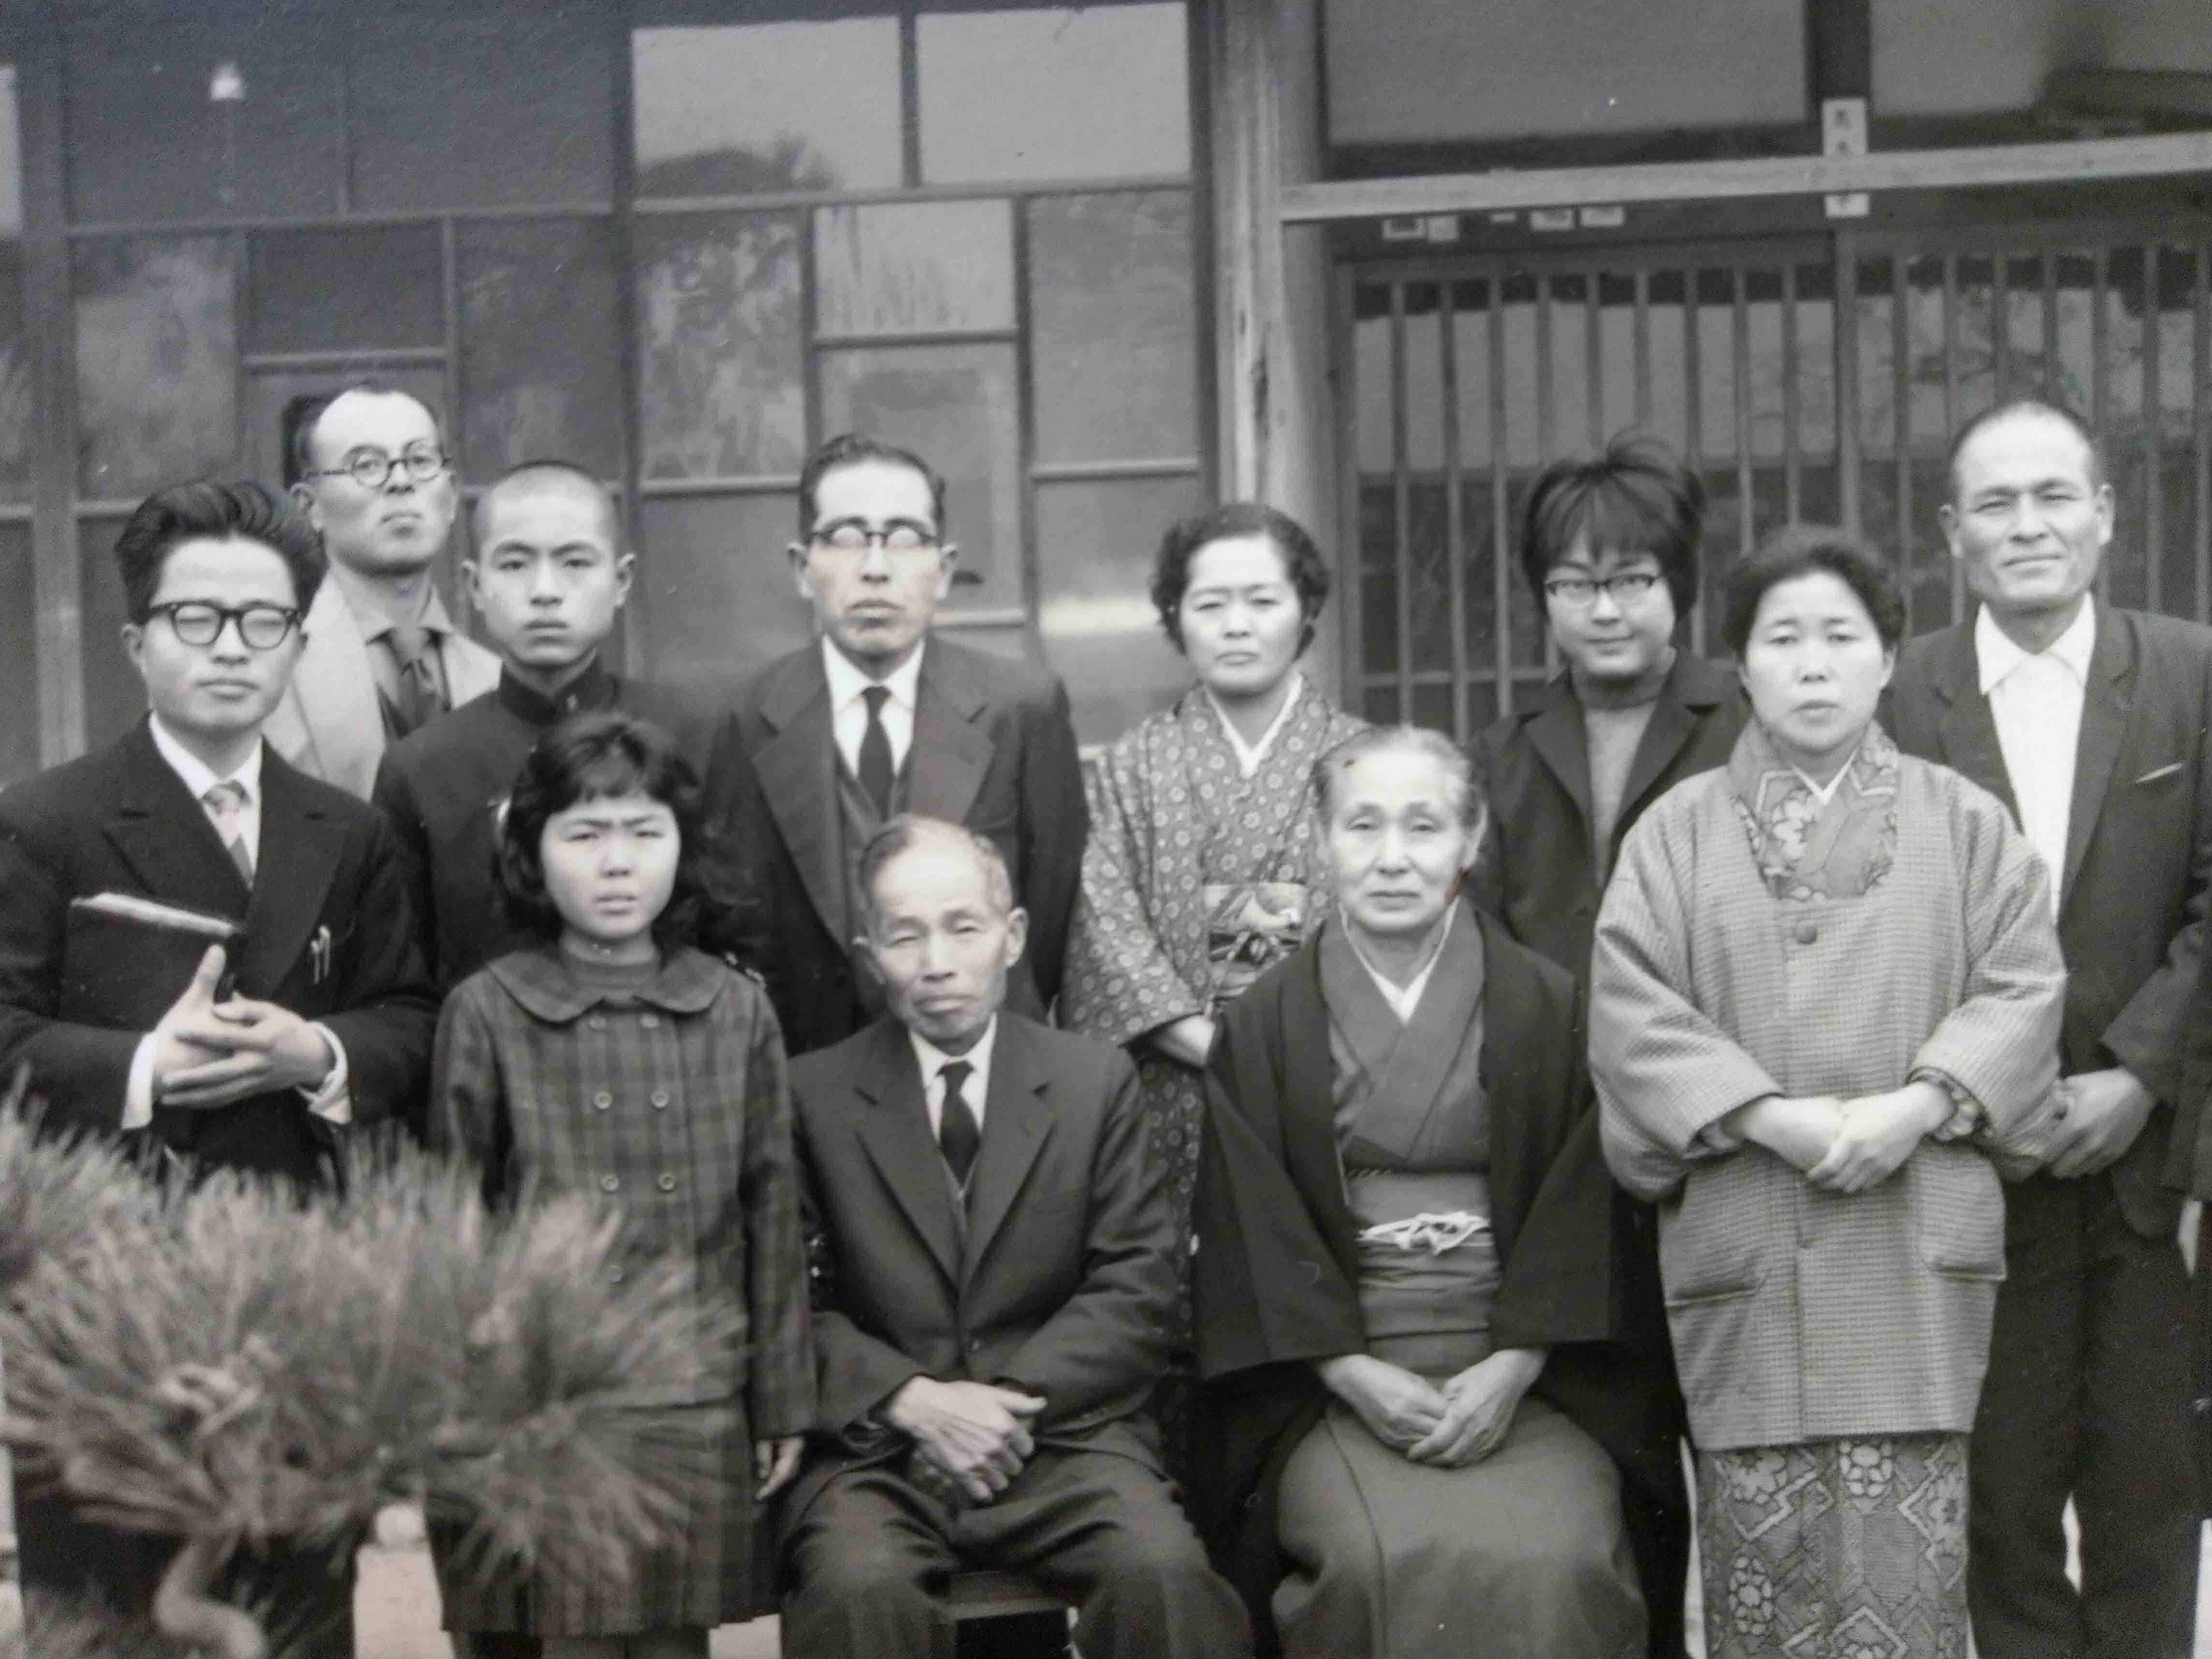 Mitsuharu and Fusae Suzuki, right, with other Seventh-day Adventist church members in an undated photo. (Photo courtesy of Akeri Suzuki)